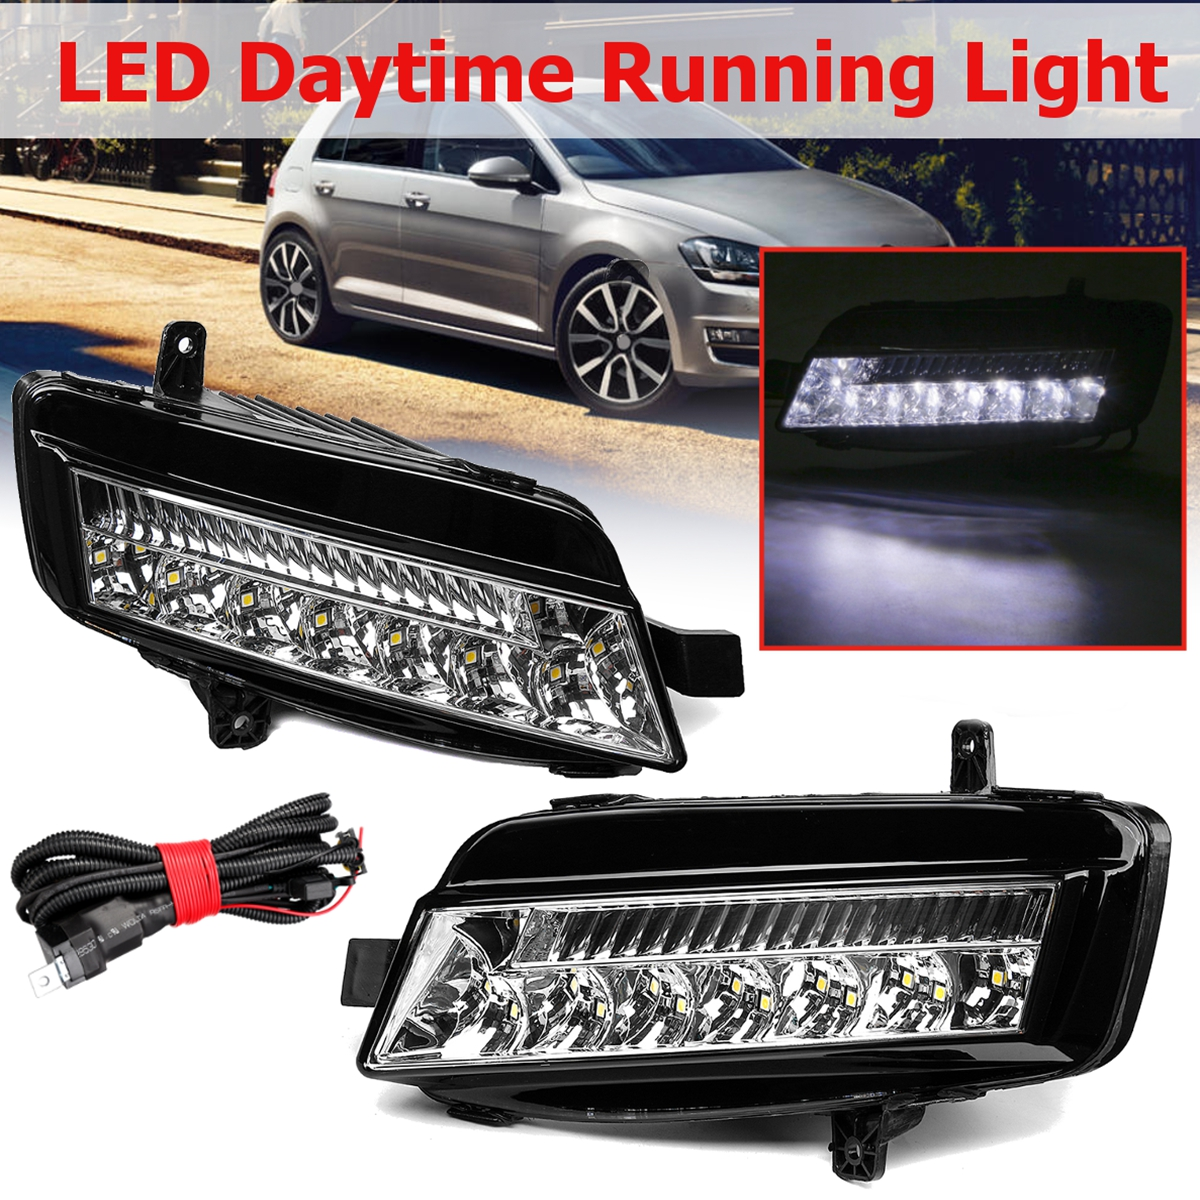 For VW Golf 7 MK7 2014 2015 2016 2017 1 Pair LED DRL Daytime Running Lights Fog Light Fog Lamp Car-styling Headlights Head Lamp 1 pair car led lights 12 24v drl head lights 8w turn light strip